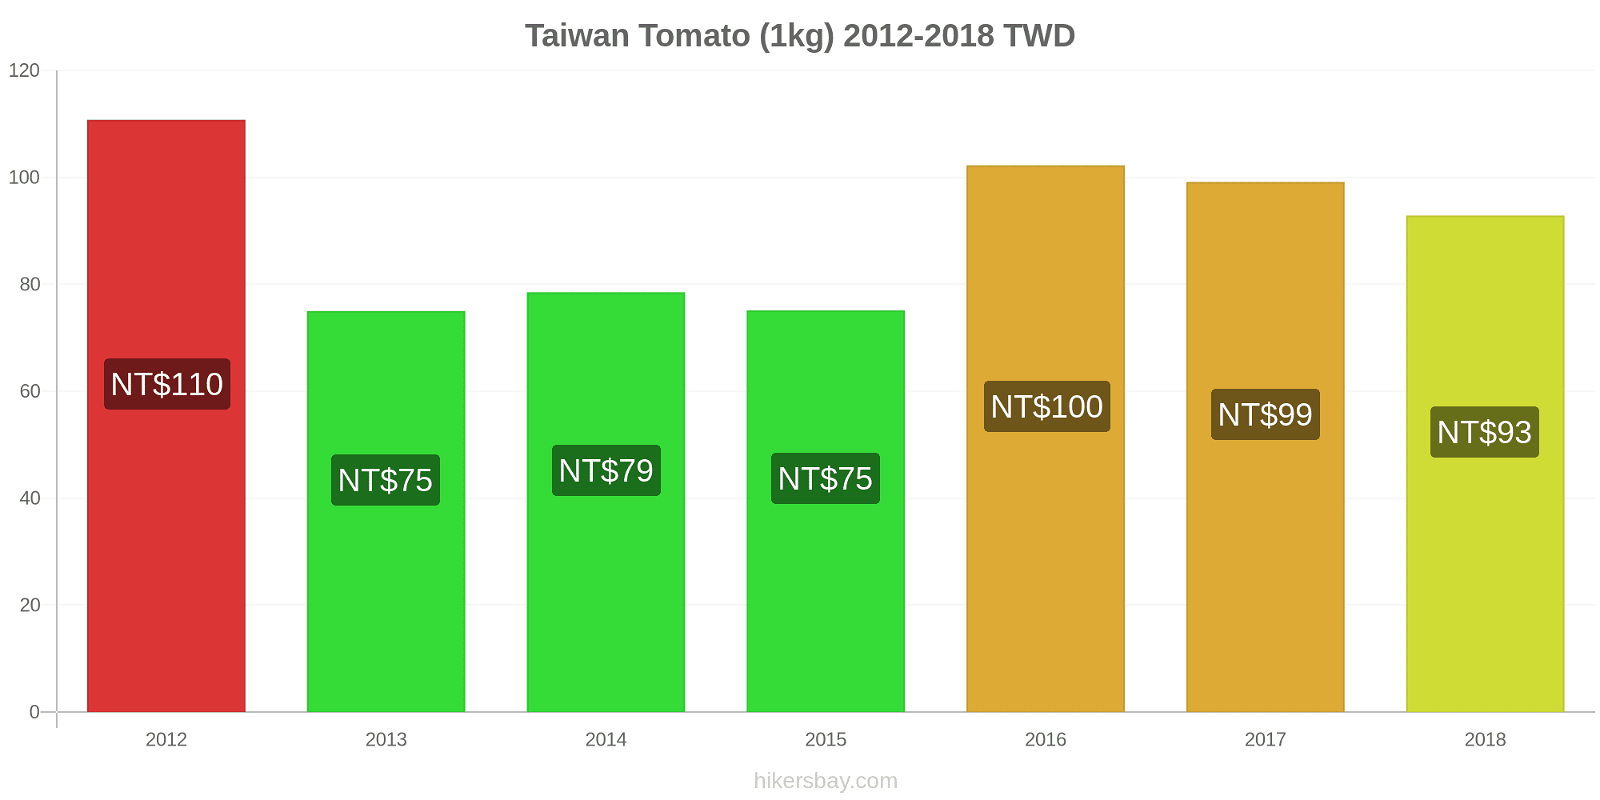 Taiwan price changes Tomato (1kg) hikersbay.com